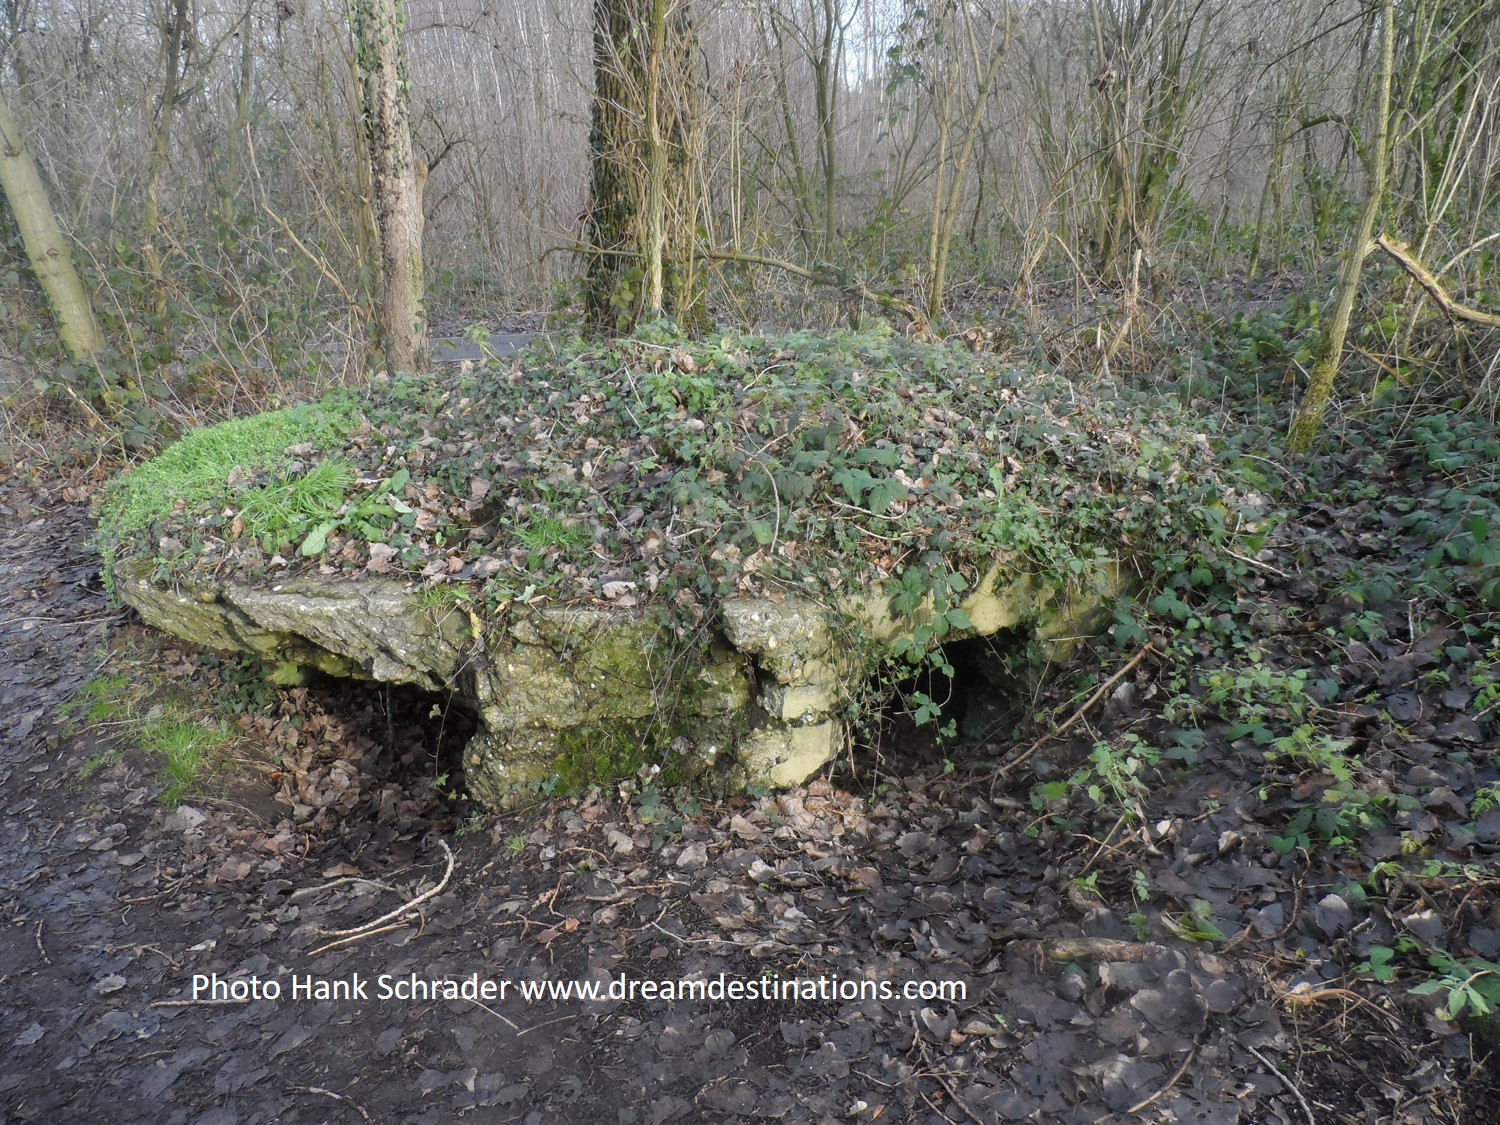 A German Bunker position on Hill 60